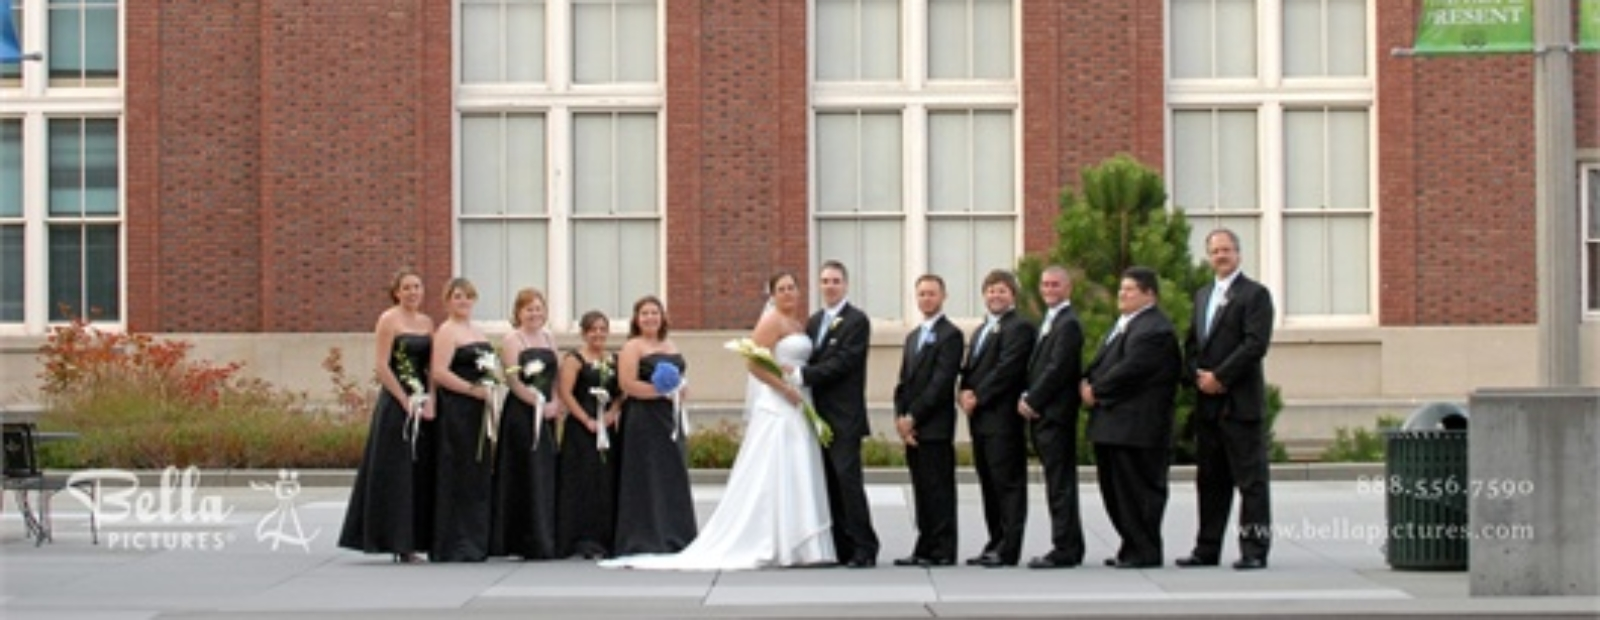 Wedding Photo Gallery 1